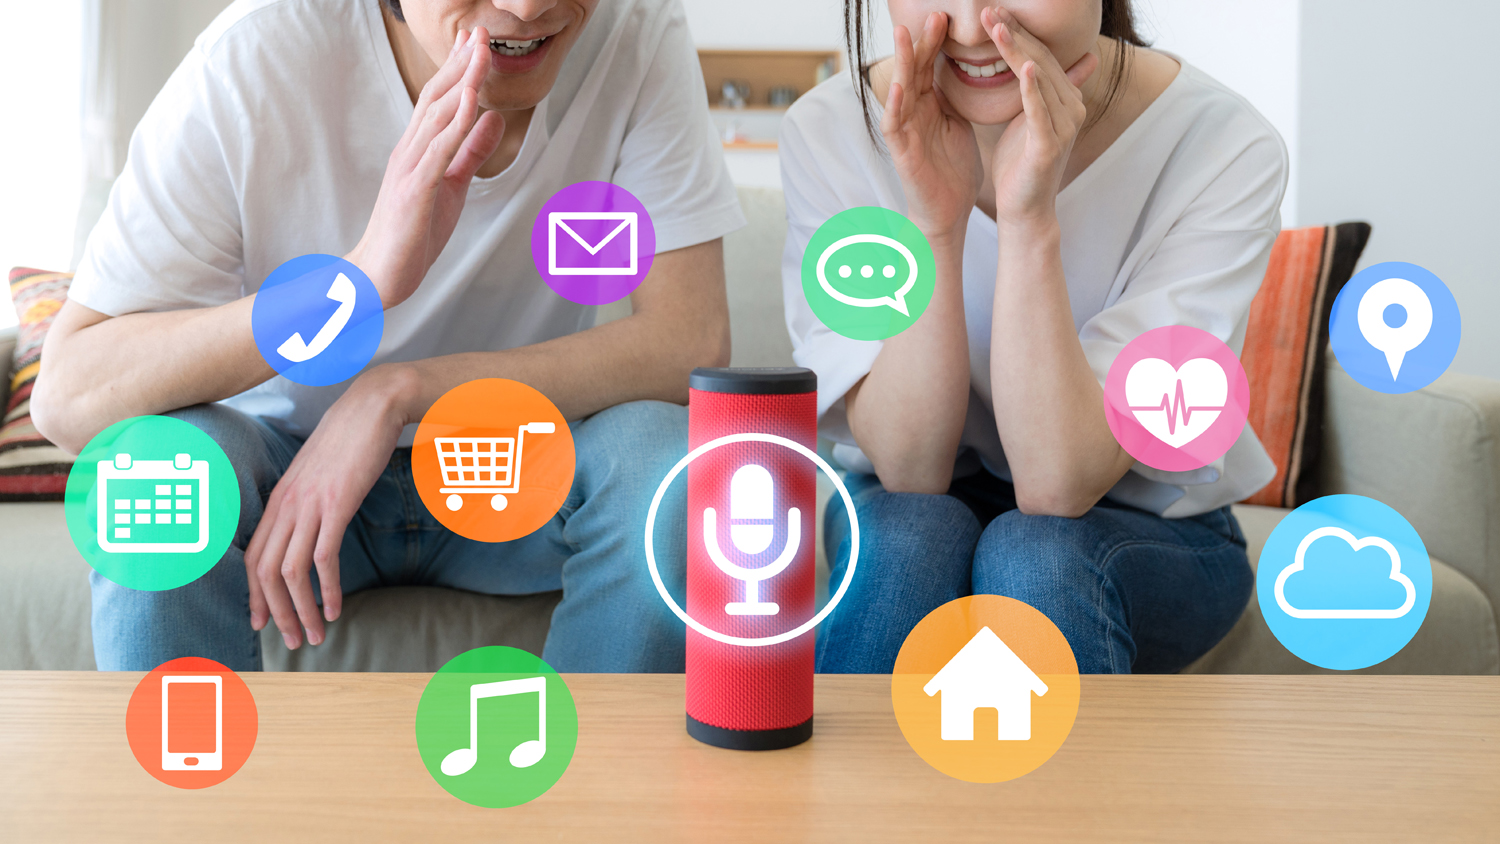 Could smart speakers change our lives?